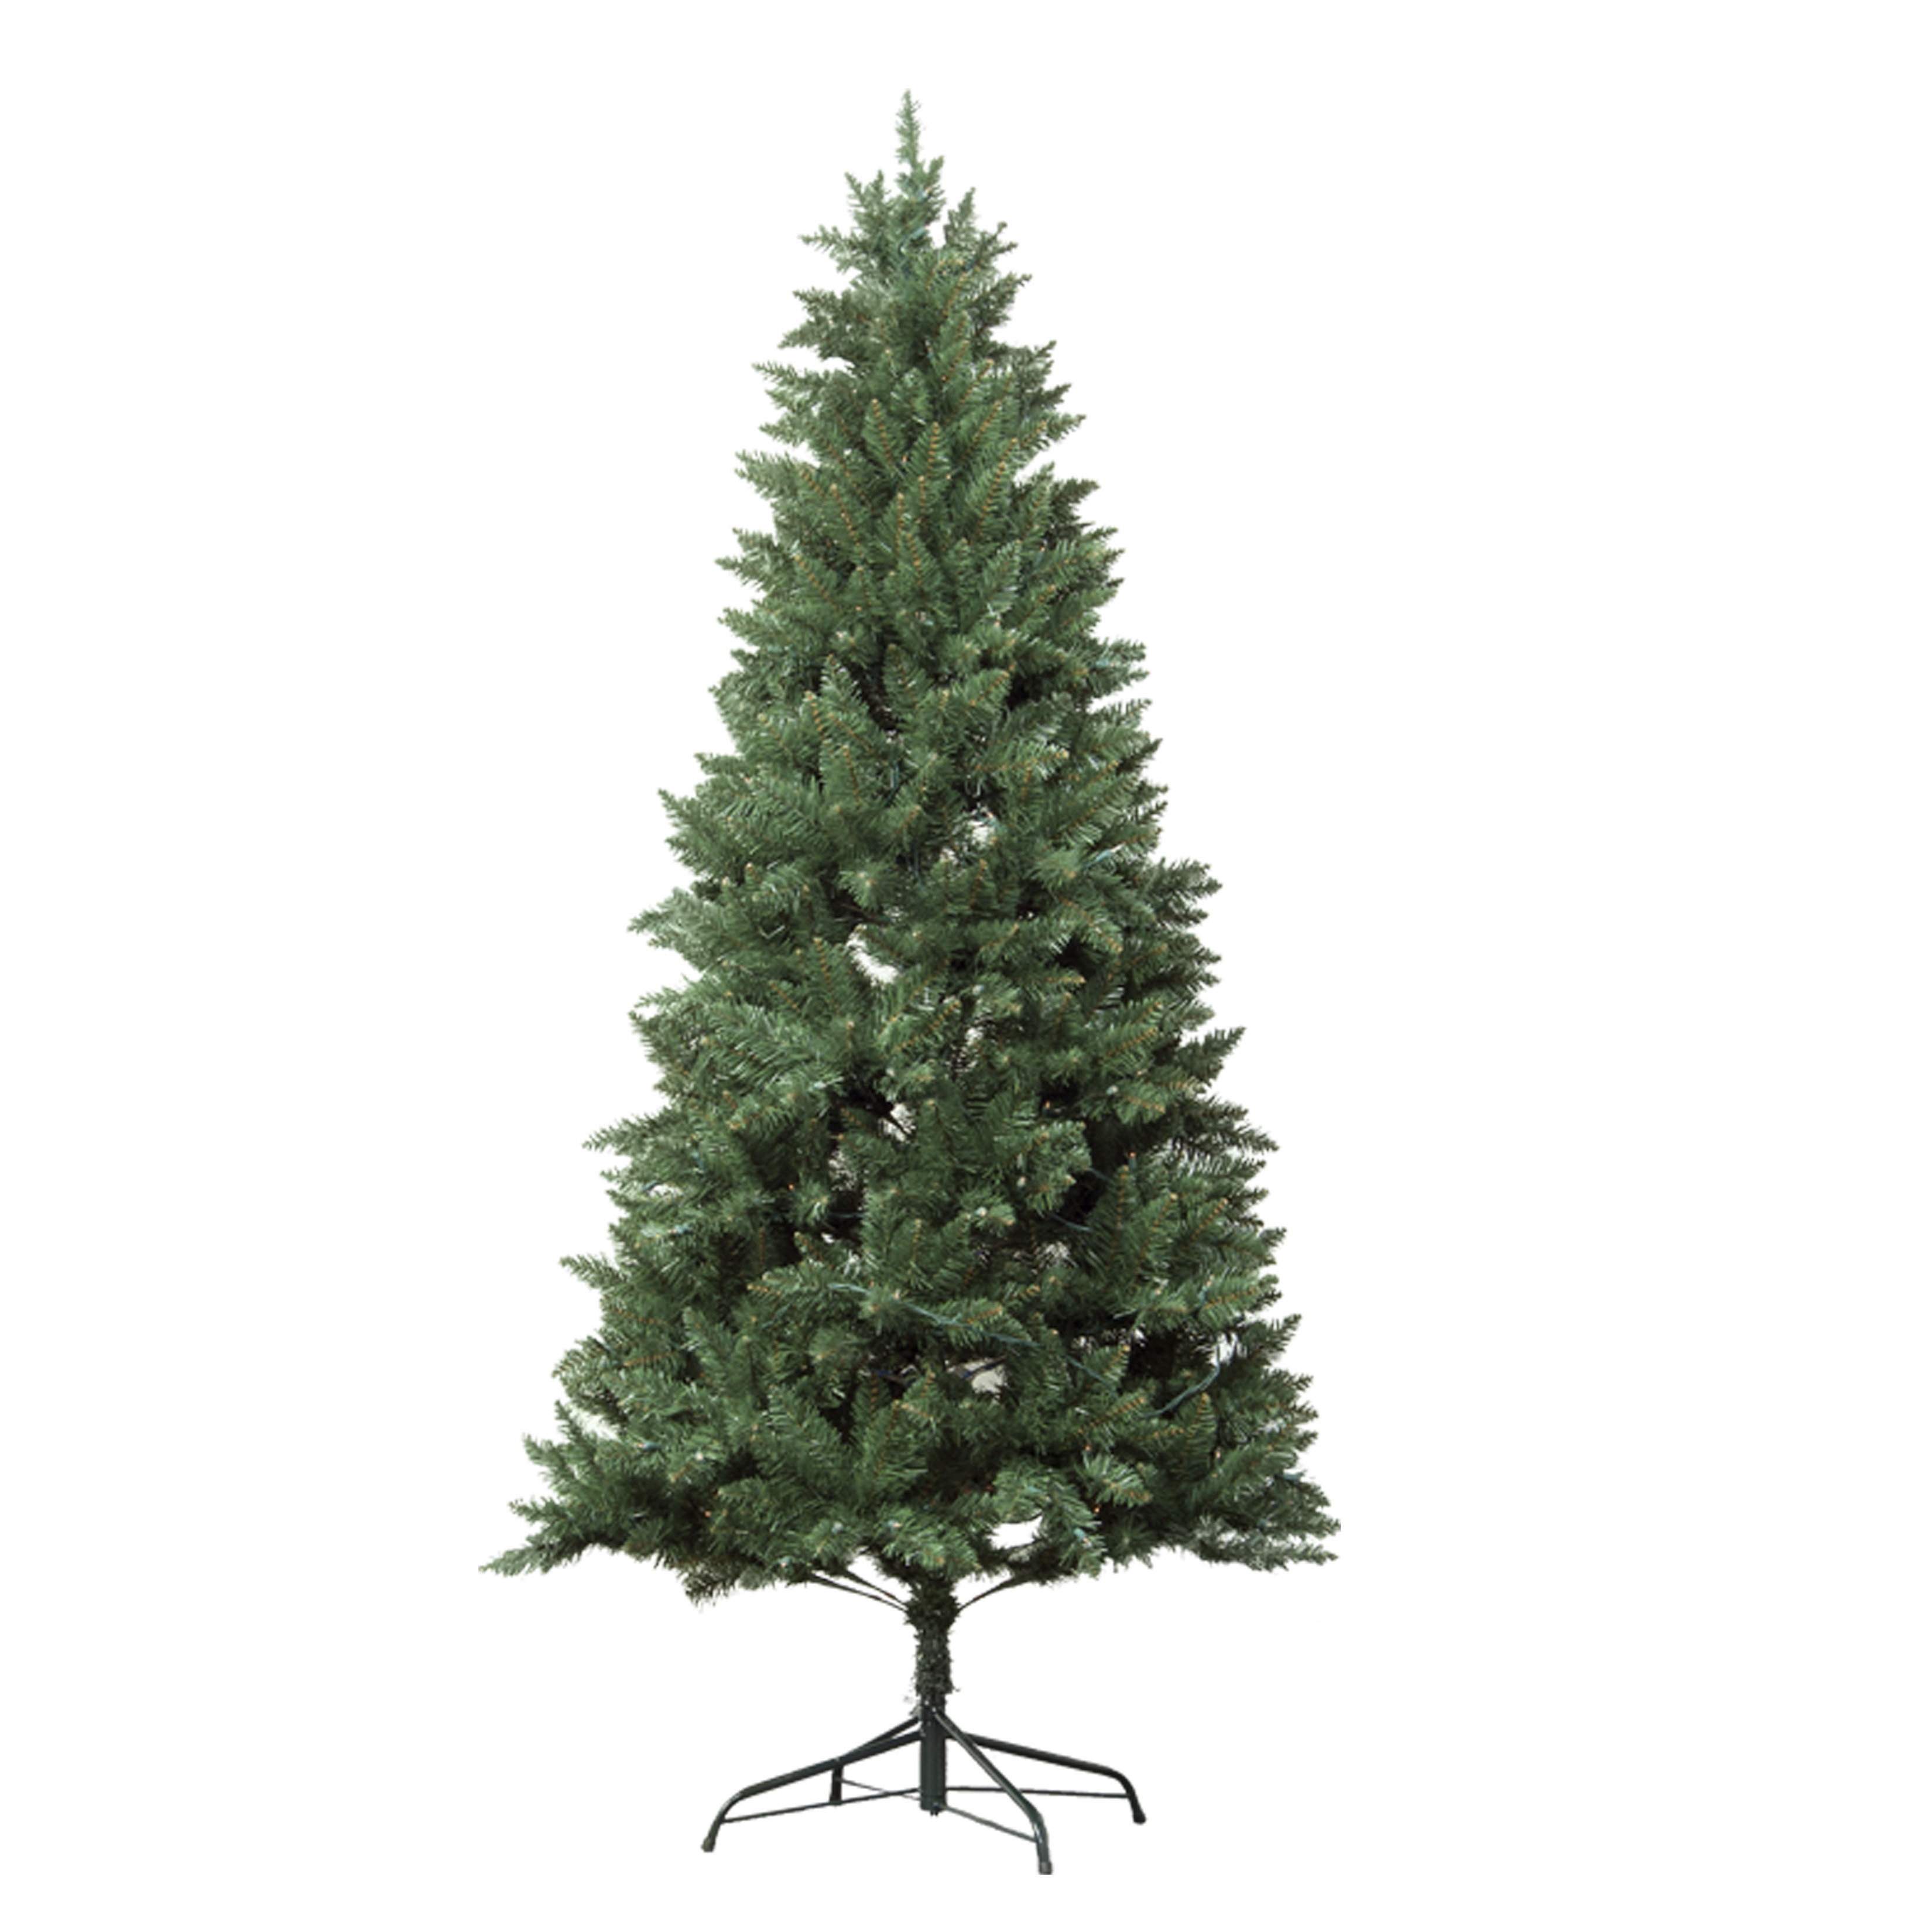 Douglas Fir Christmas Tree.Astella 7 Foot Pre Lit Douglas Fir Hinged Artificial Christmas Tree With Stand And 300 Clear Incandescent Lights